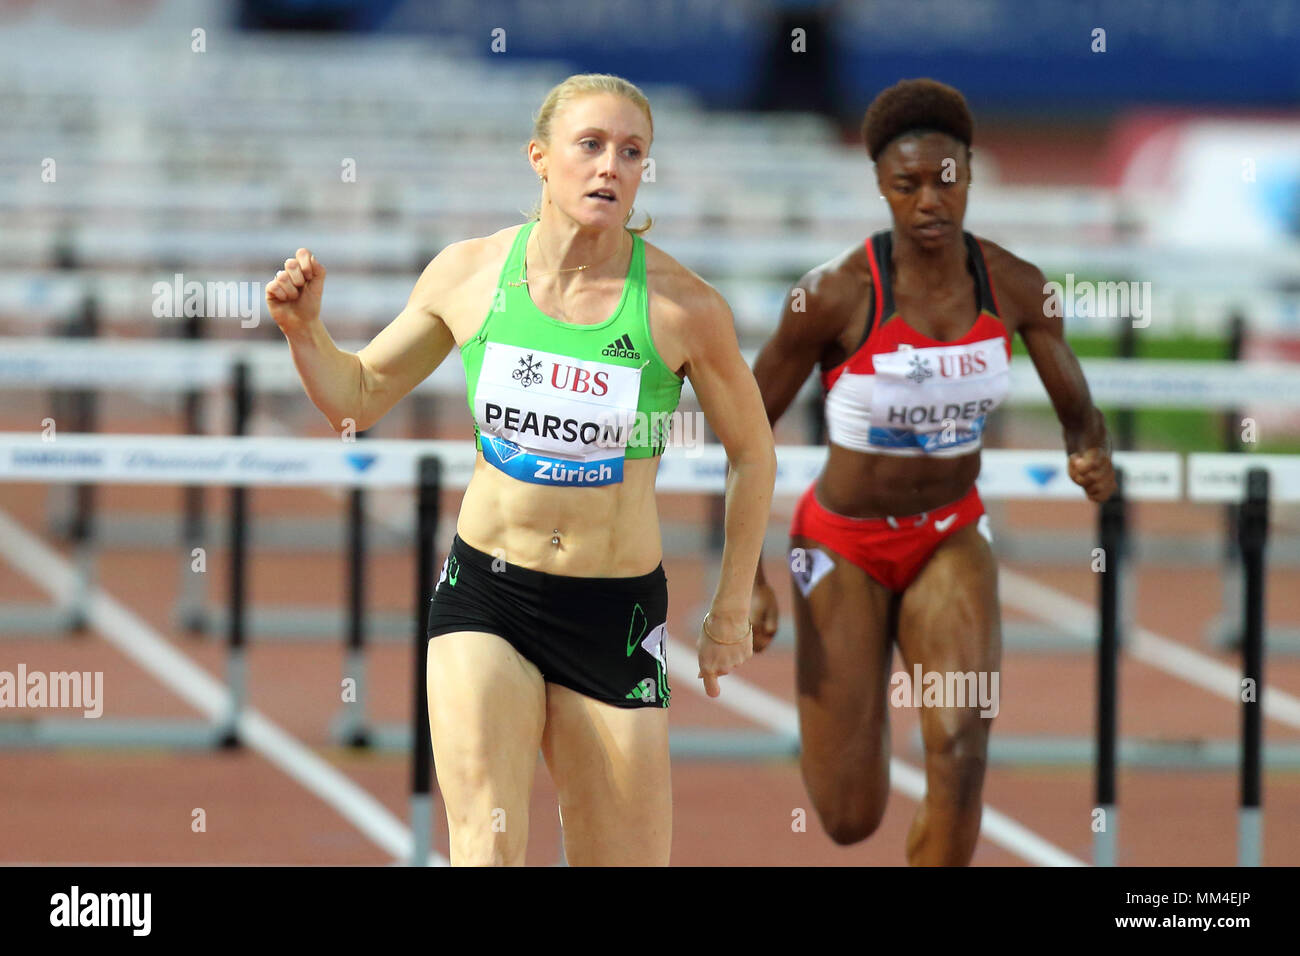 Zurich, Switzerland. 08th, Sep 2011. Australian's Sally Person compete in the final of the Women's 100m hurdle during the IAFF Diamond League Meeting  Stock Photo